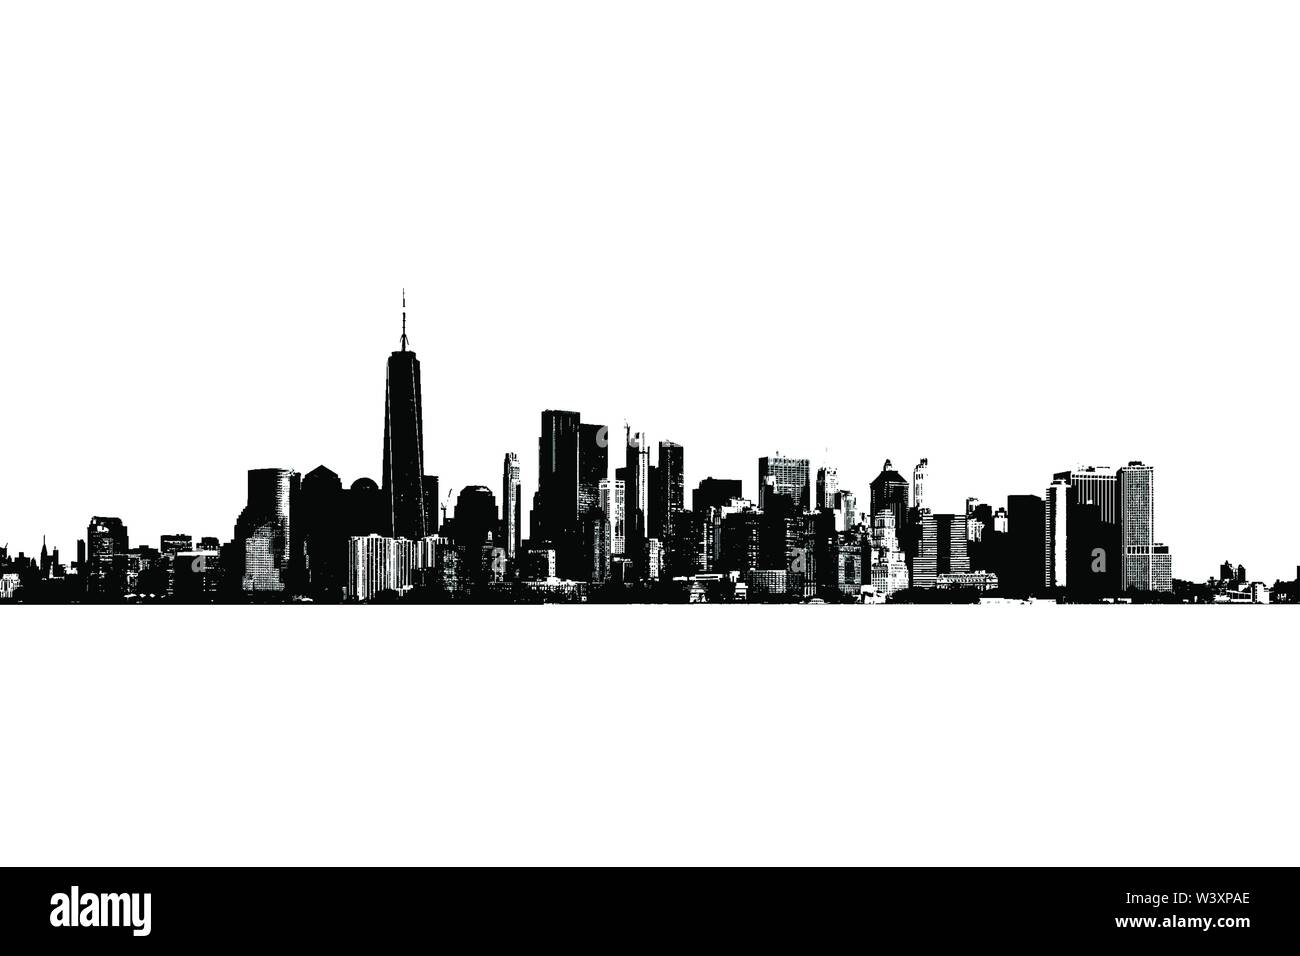 Silhouette of Manhattah skyline in black and white. - Stock Image